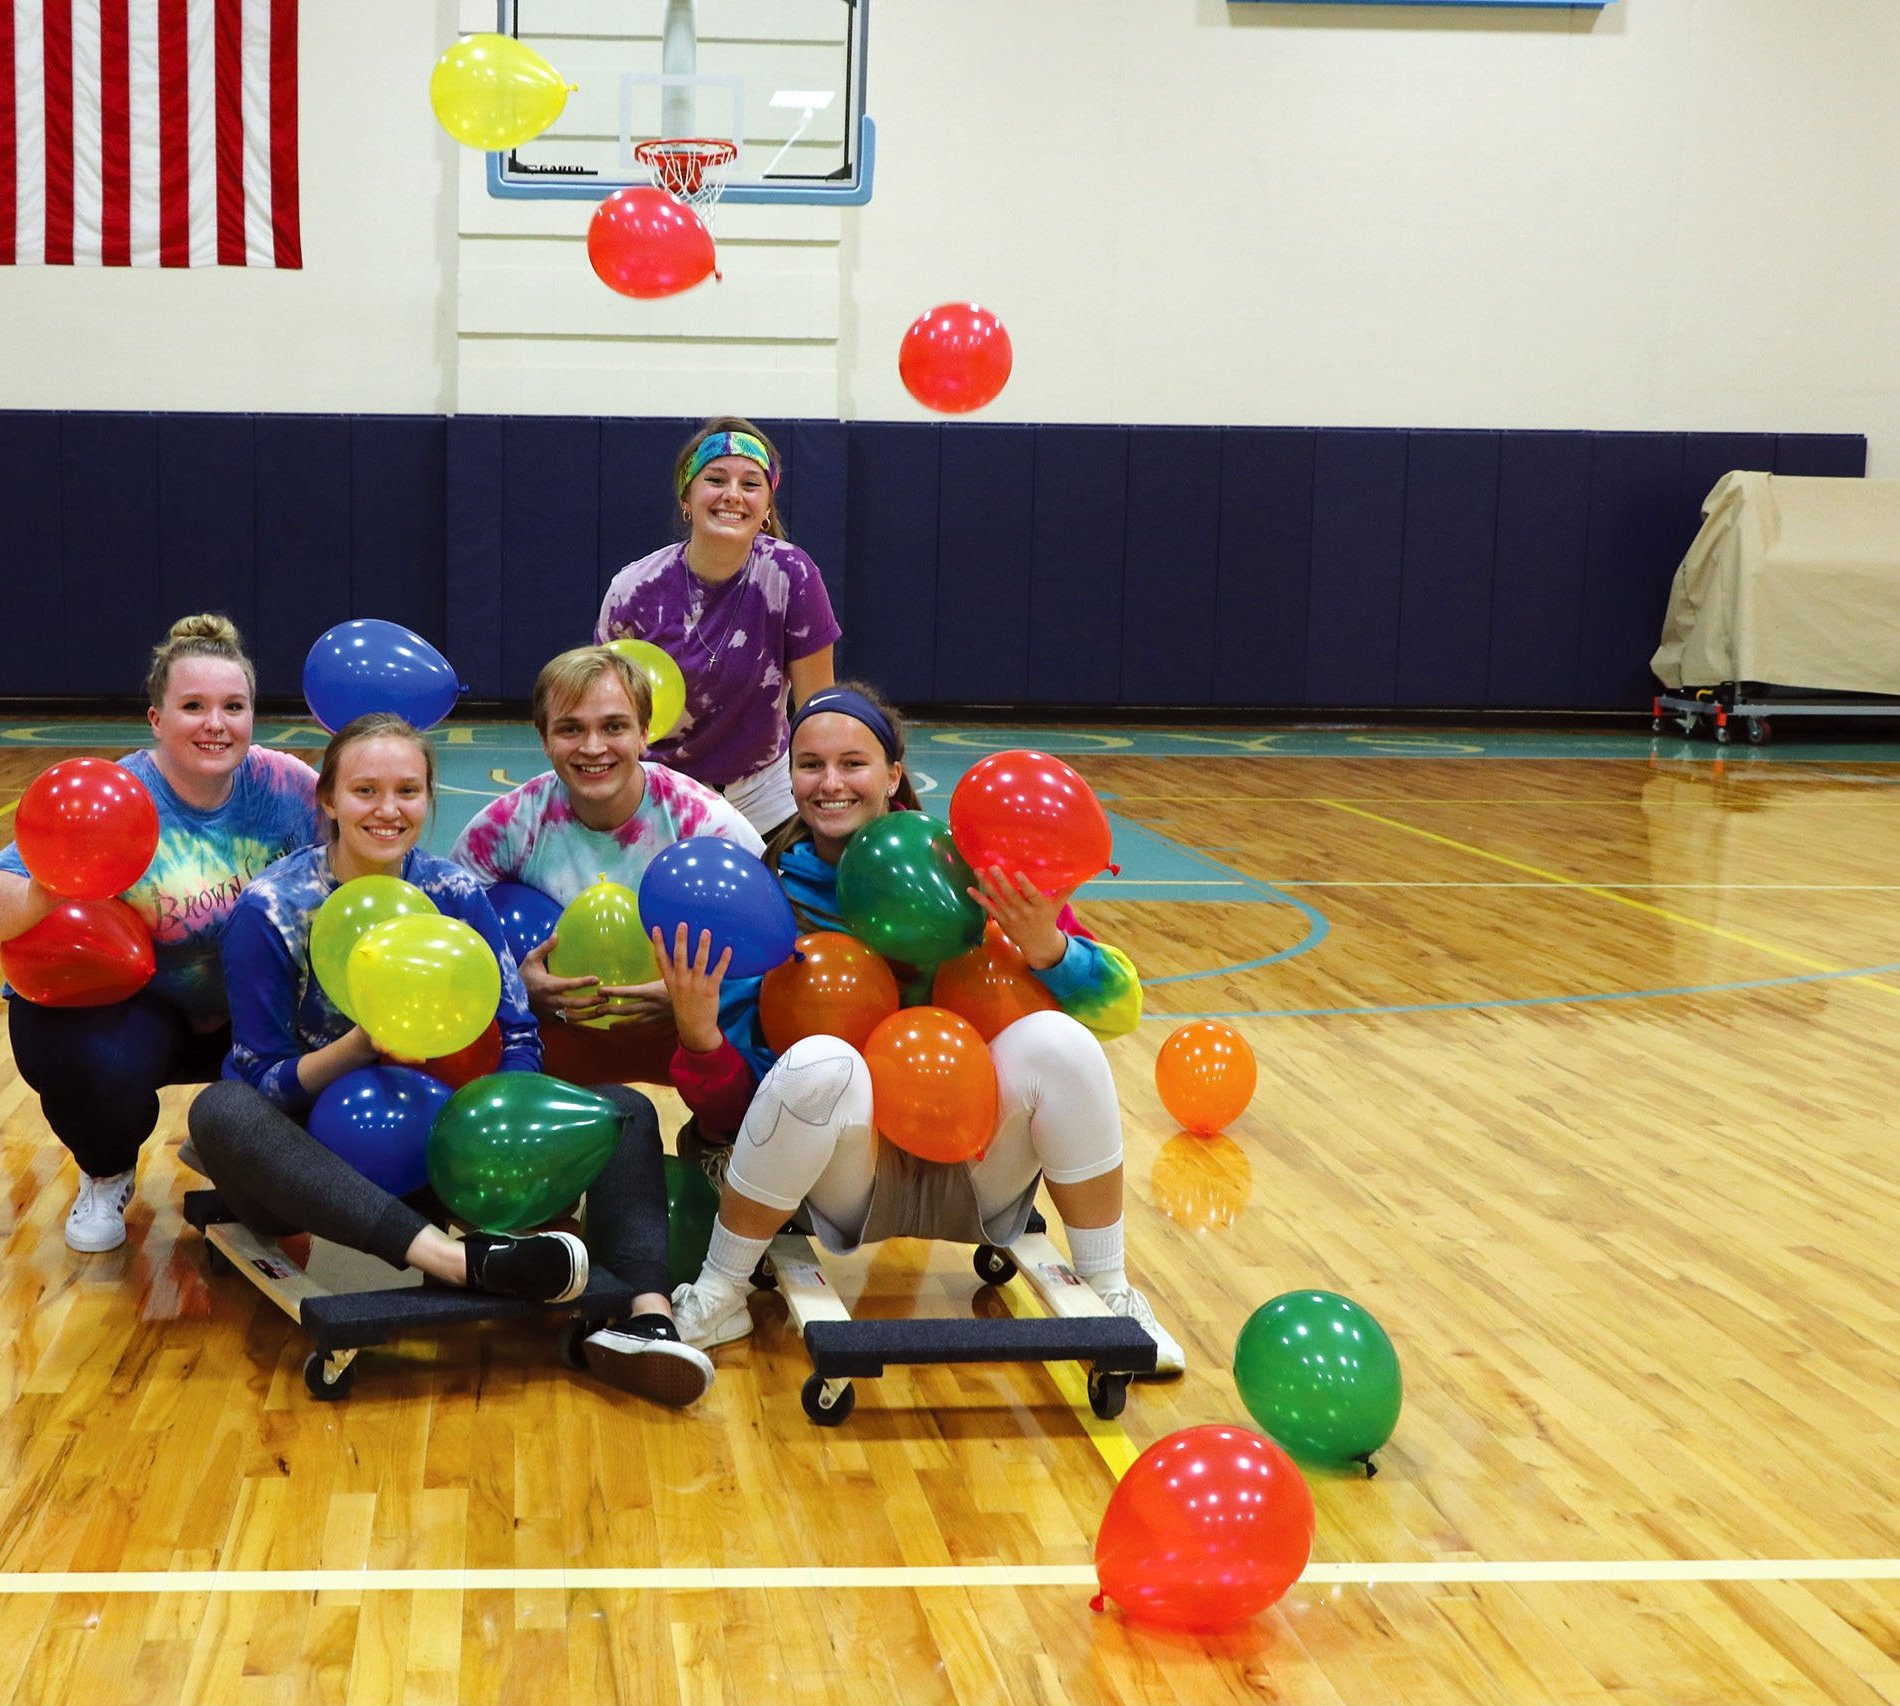 Students playing balloon game in the gym